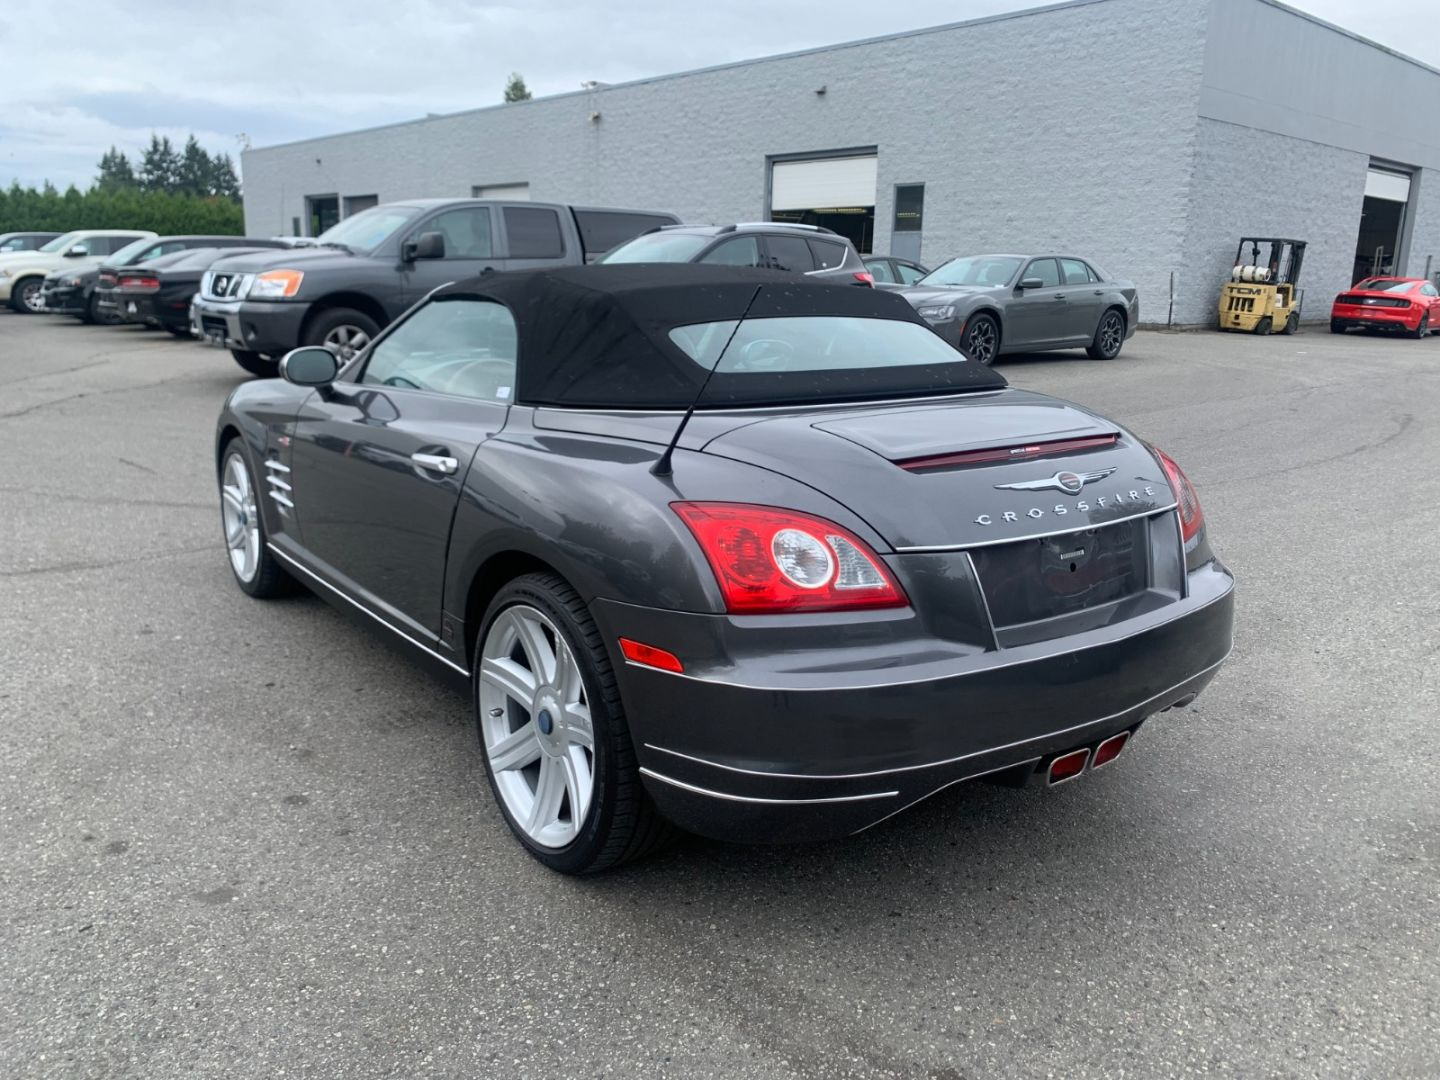 2005 Chrysler Crossfire Limited for sale in Surrey, British Columbia